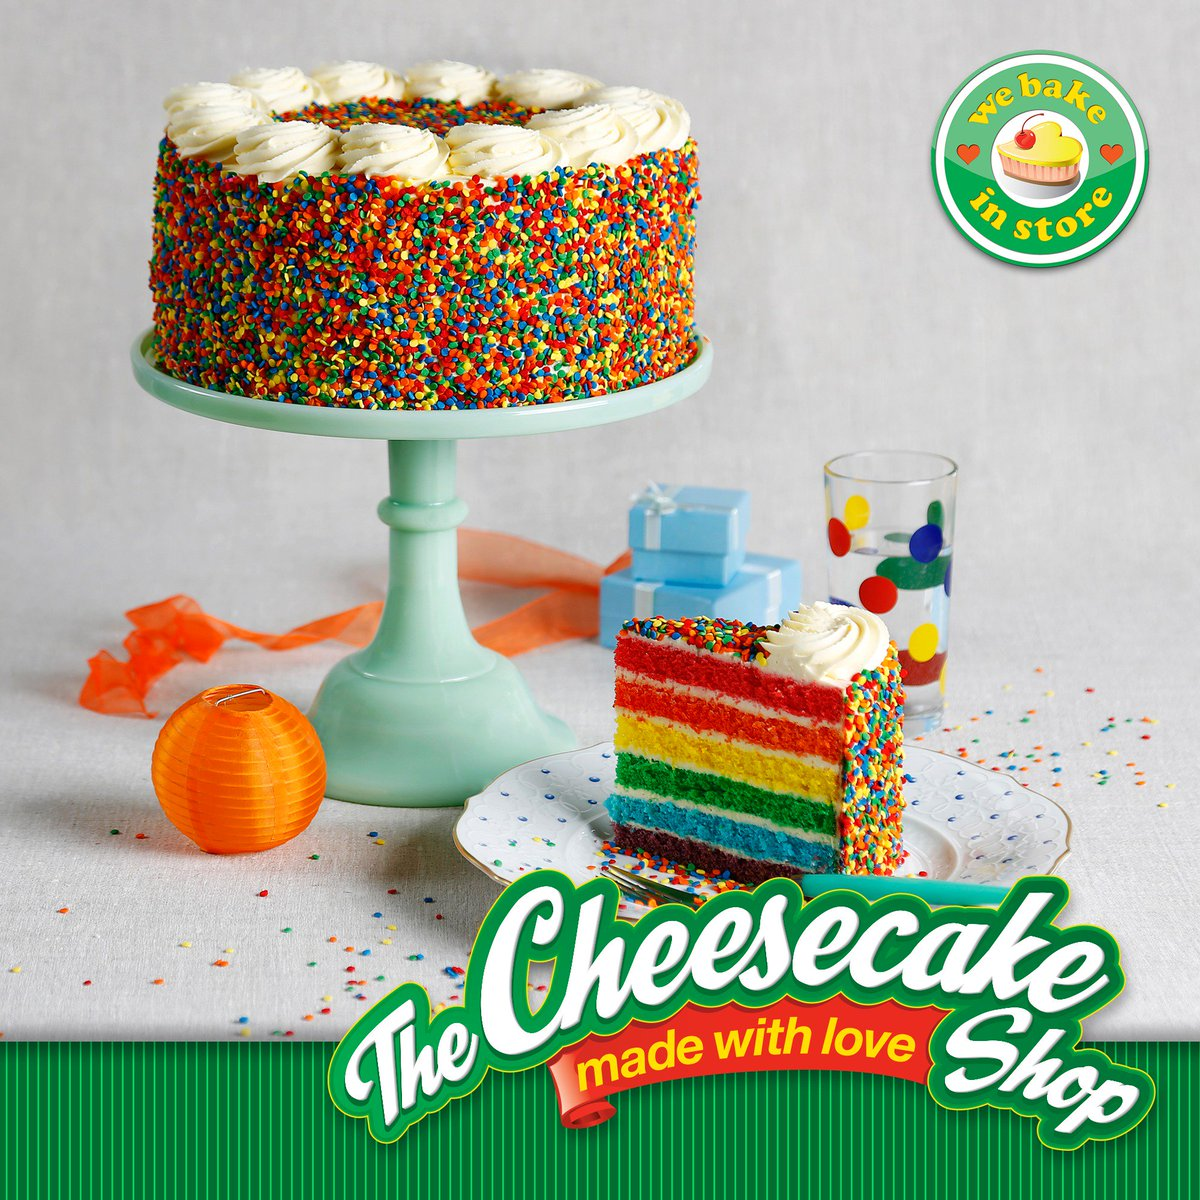 The Cheesecake Shop On Twitter Nothing Beats A Rainbow Cake On